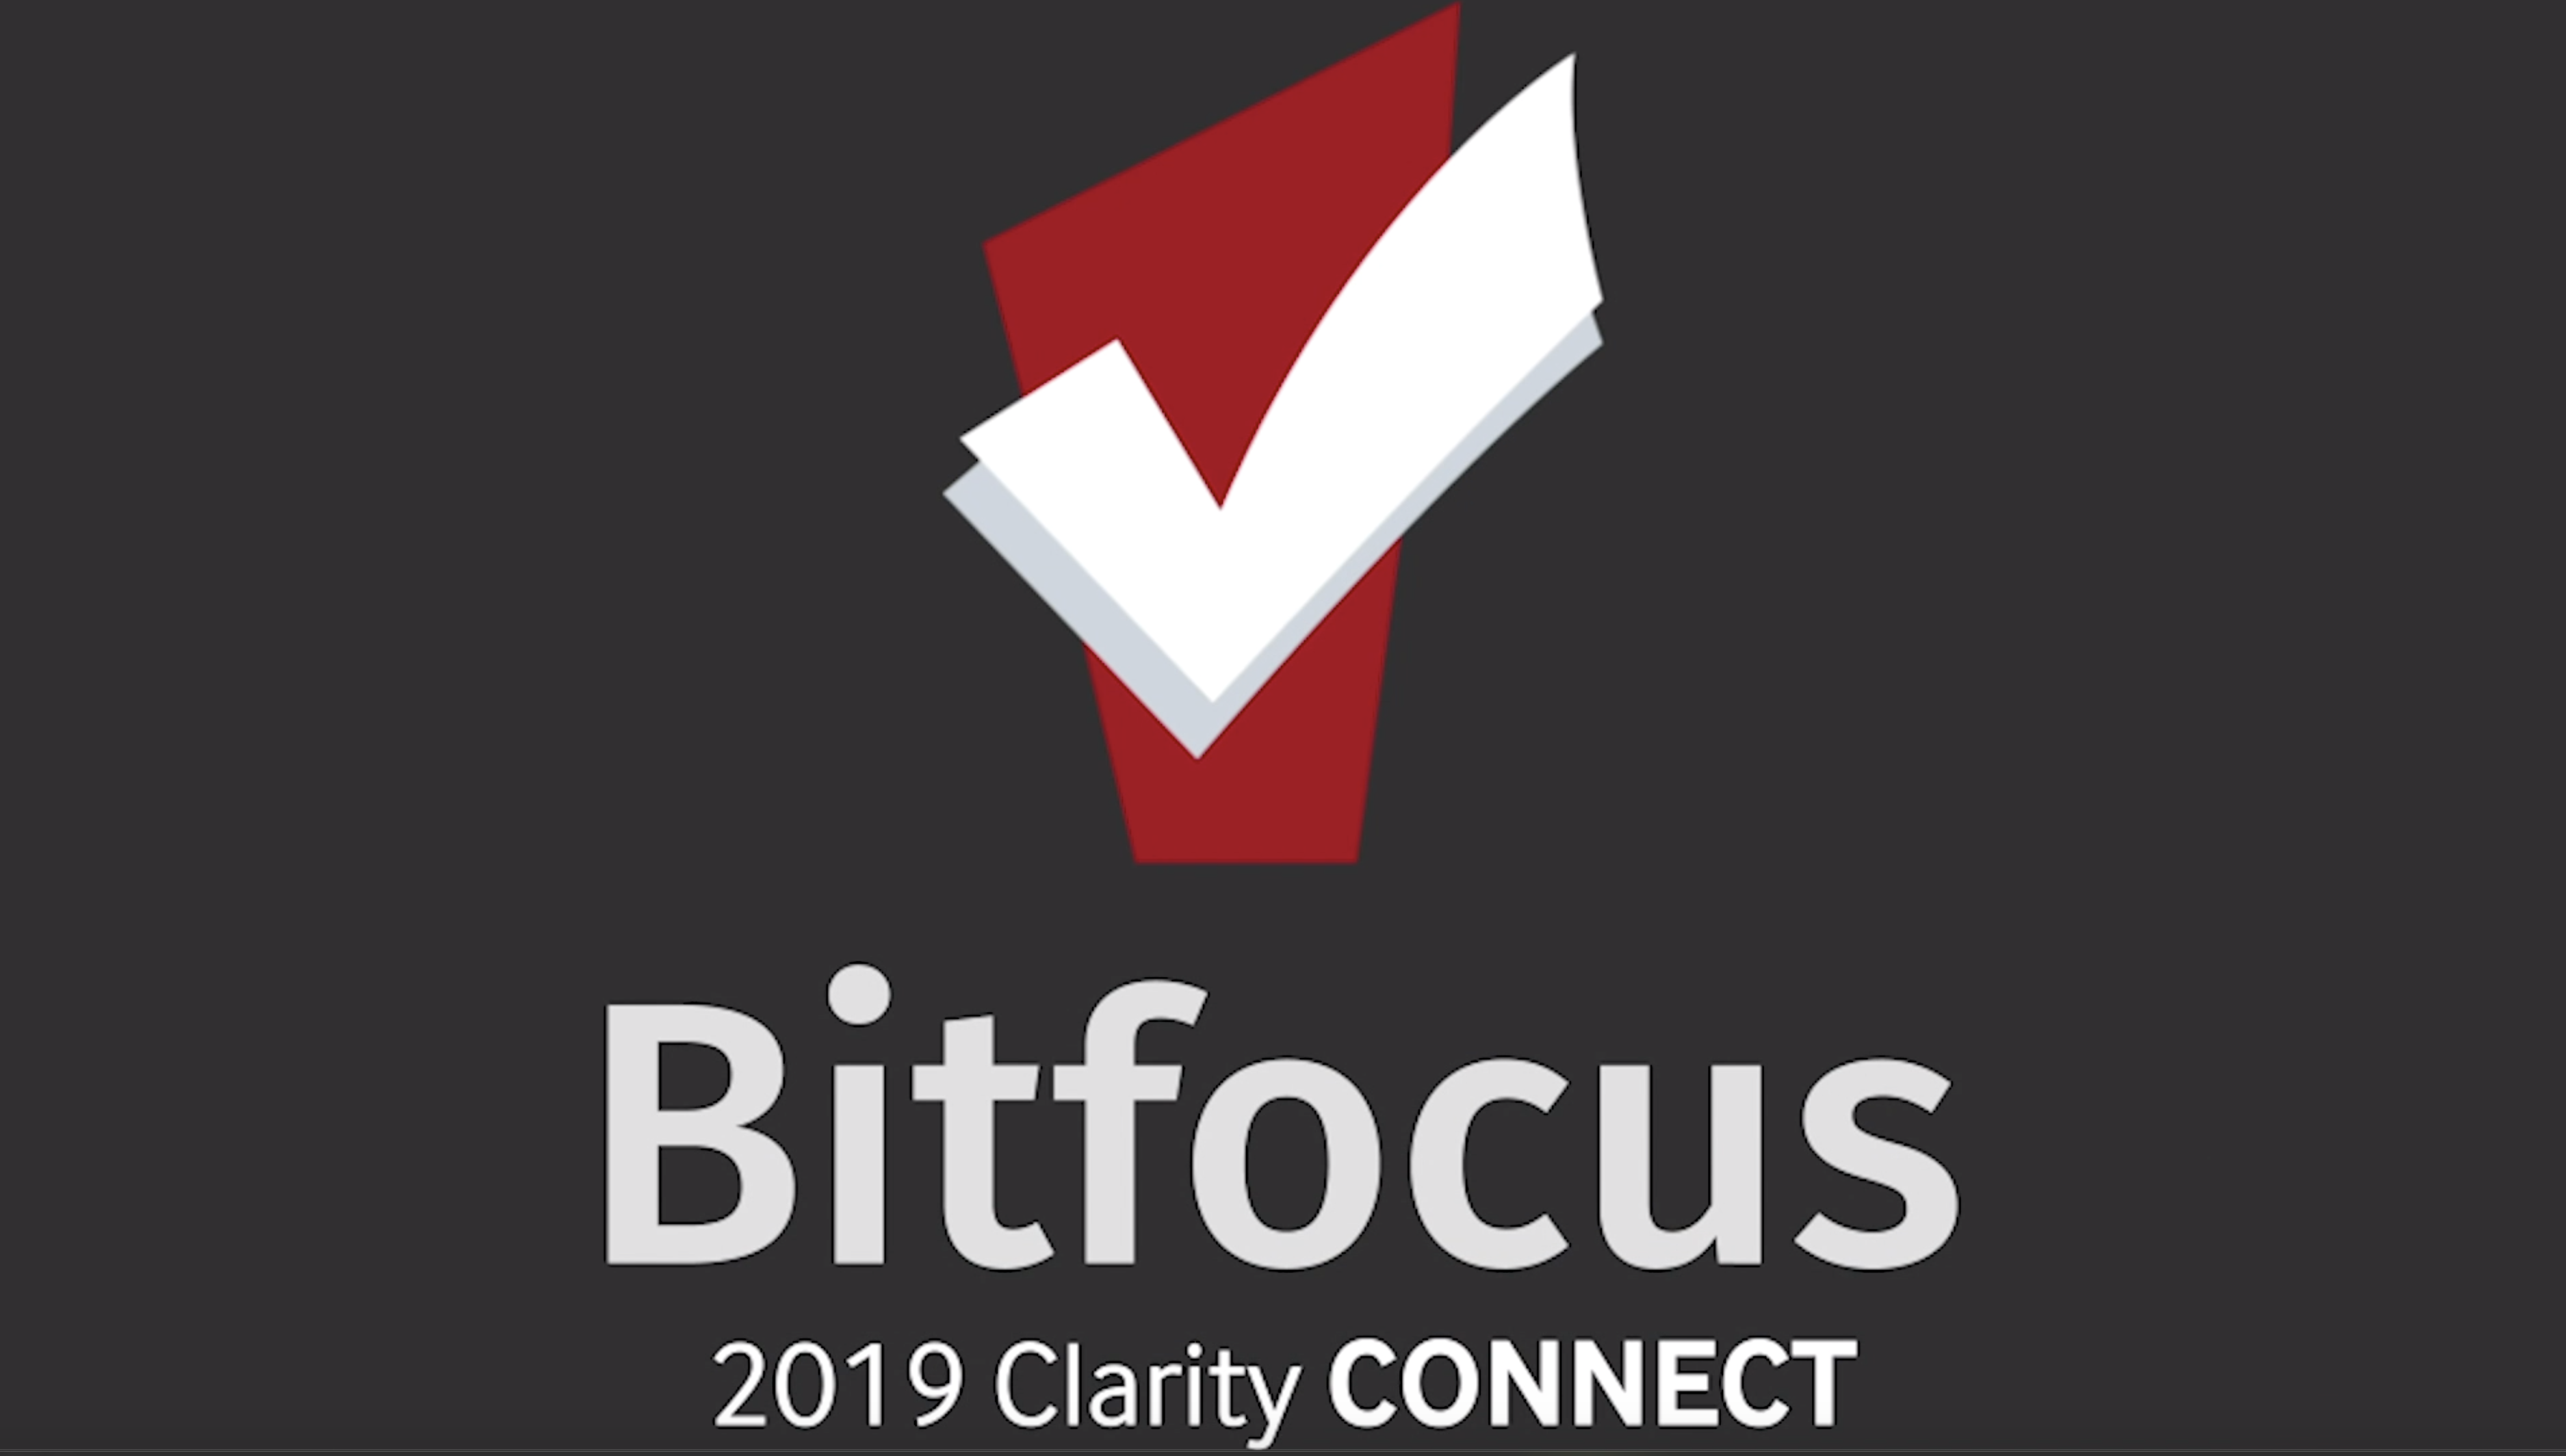 Clarity Connect 2019: System Administration - 2020 HMIS Data Standards